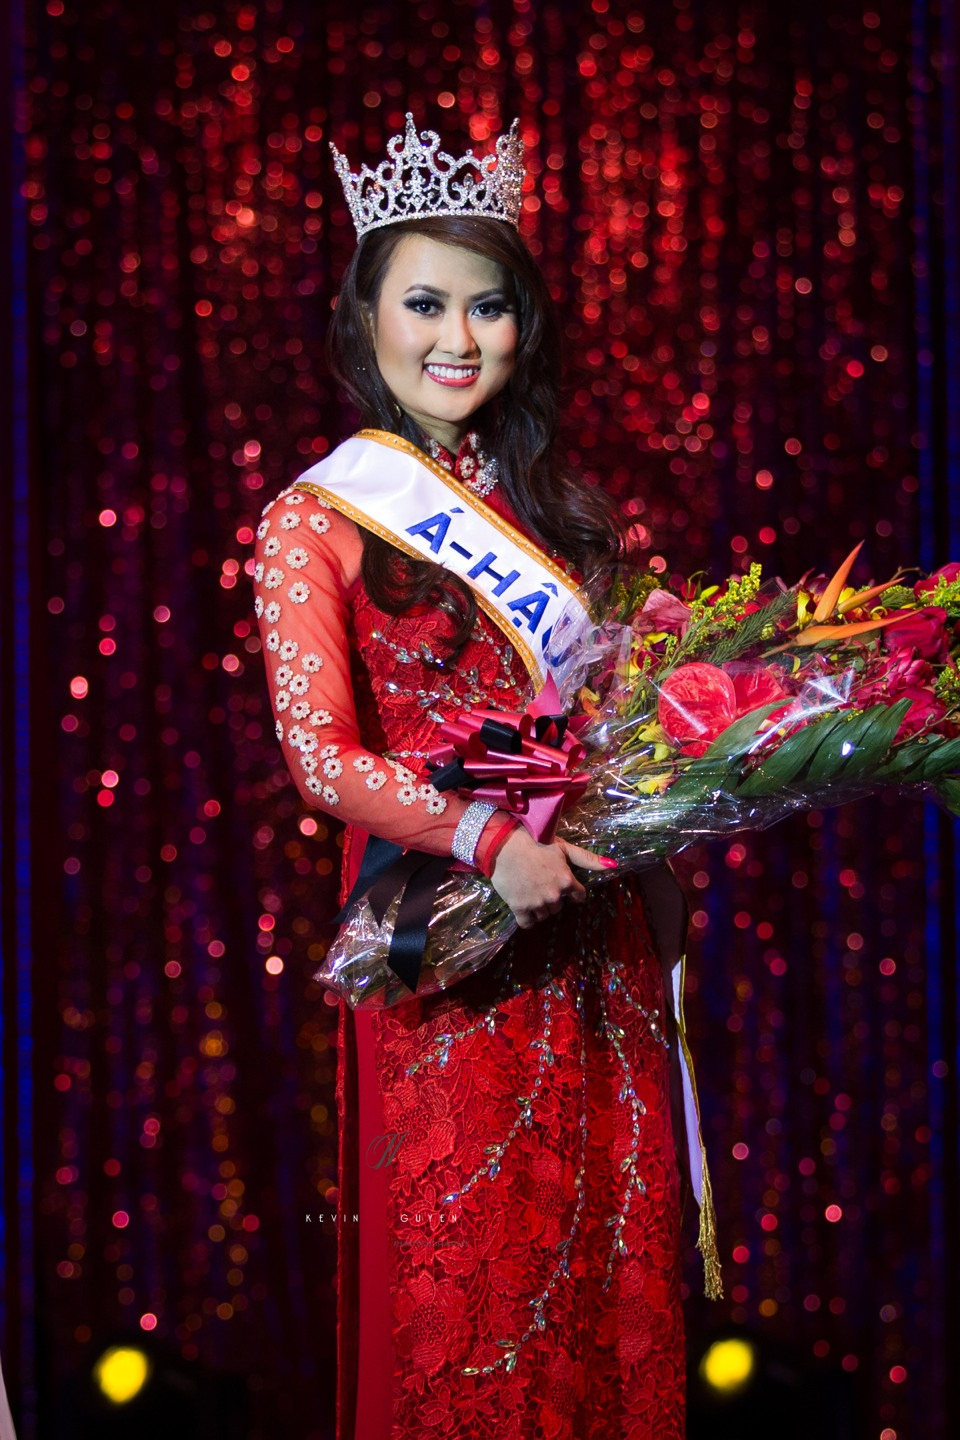 Pageant Day 2015 - Miss Vietnam of Northern California Pageant | Hoa Hậu Áo Dài Bắc Cali - Image 253